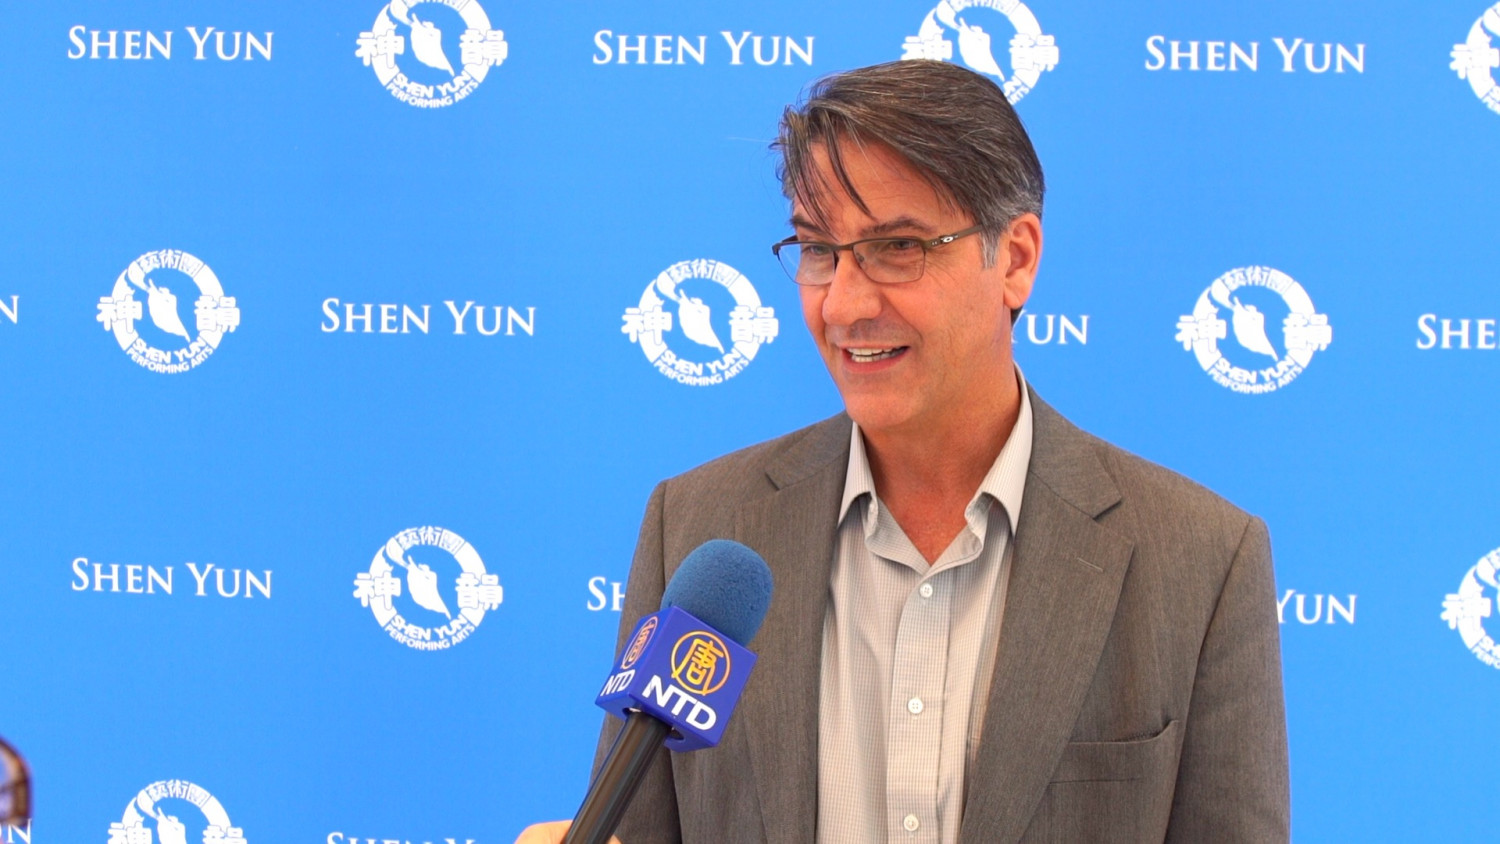 Mayor Admires Shen Yun's Modesty and Virtue